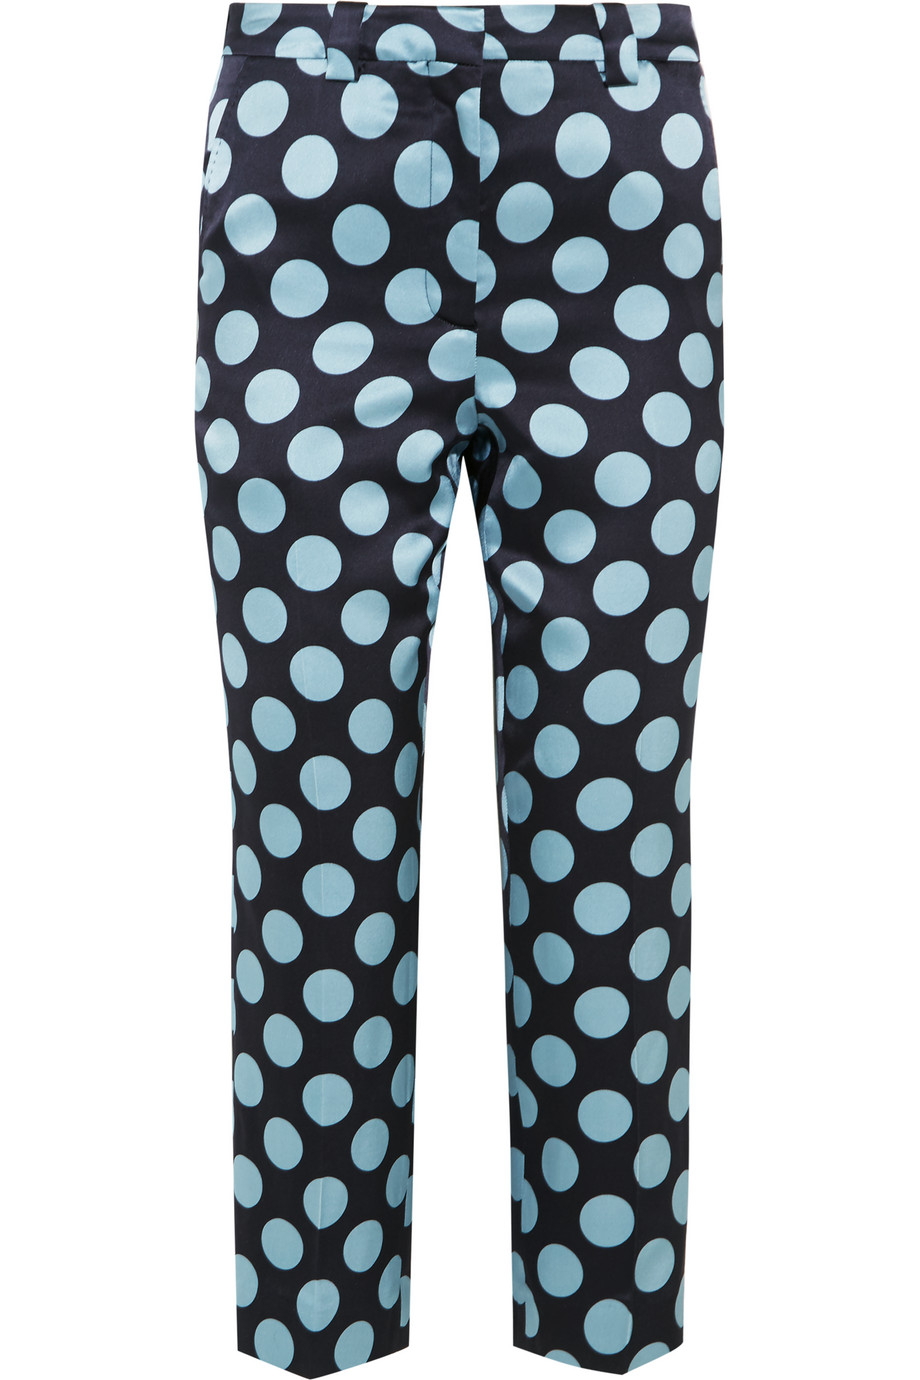 Topshop Unique Elystan Printed Silk-Satin Straight-Leg Pants, Sky Blue, Women's, Size: 8